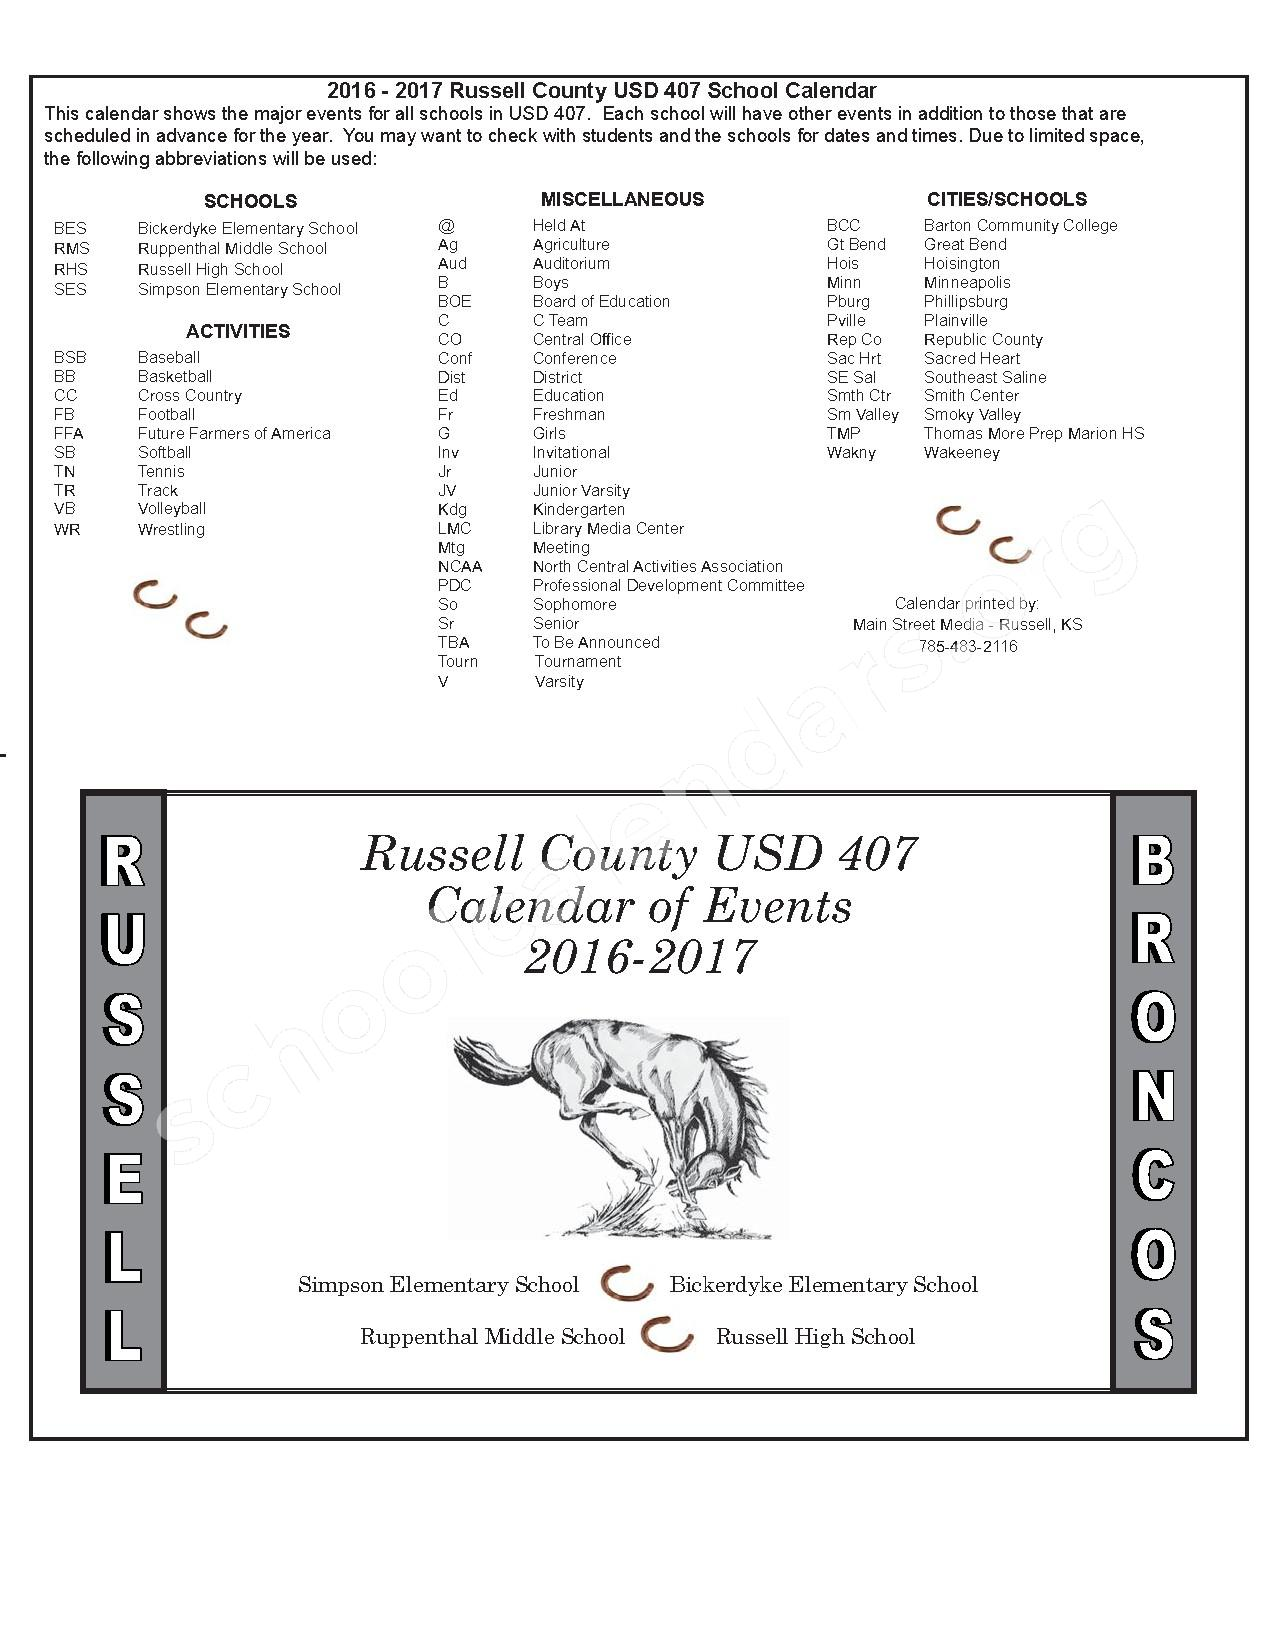 2016 - 2017 District Calendar – Russell County Schools USD 407 – page 14